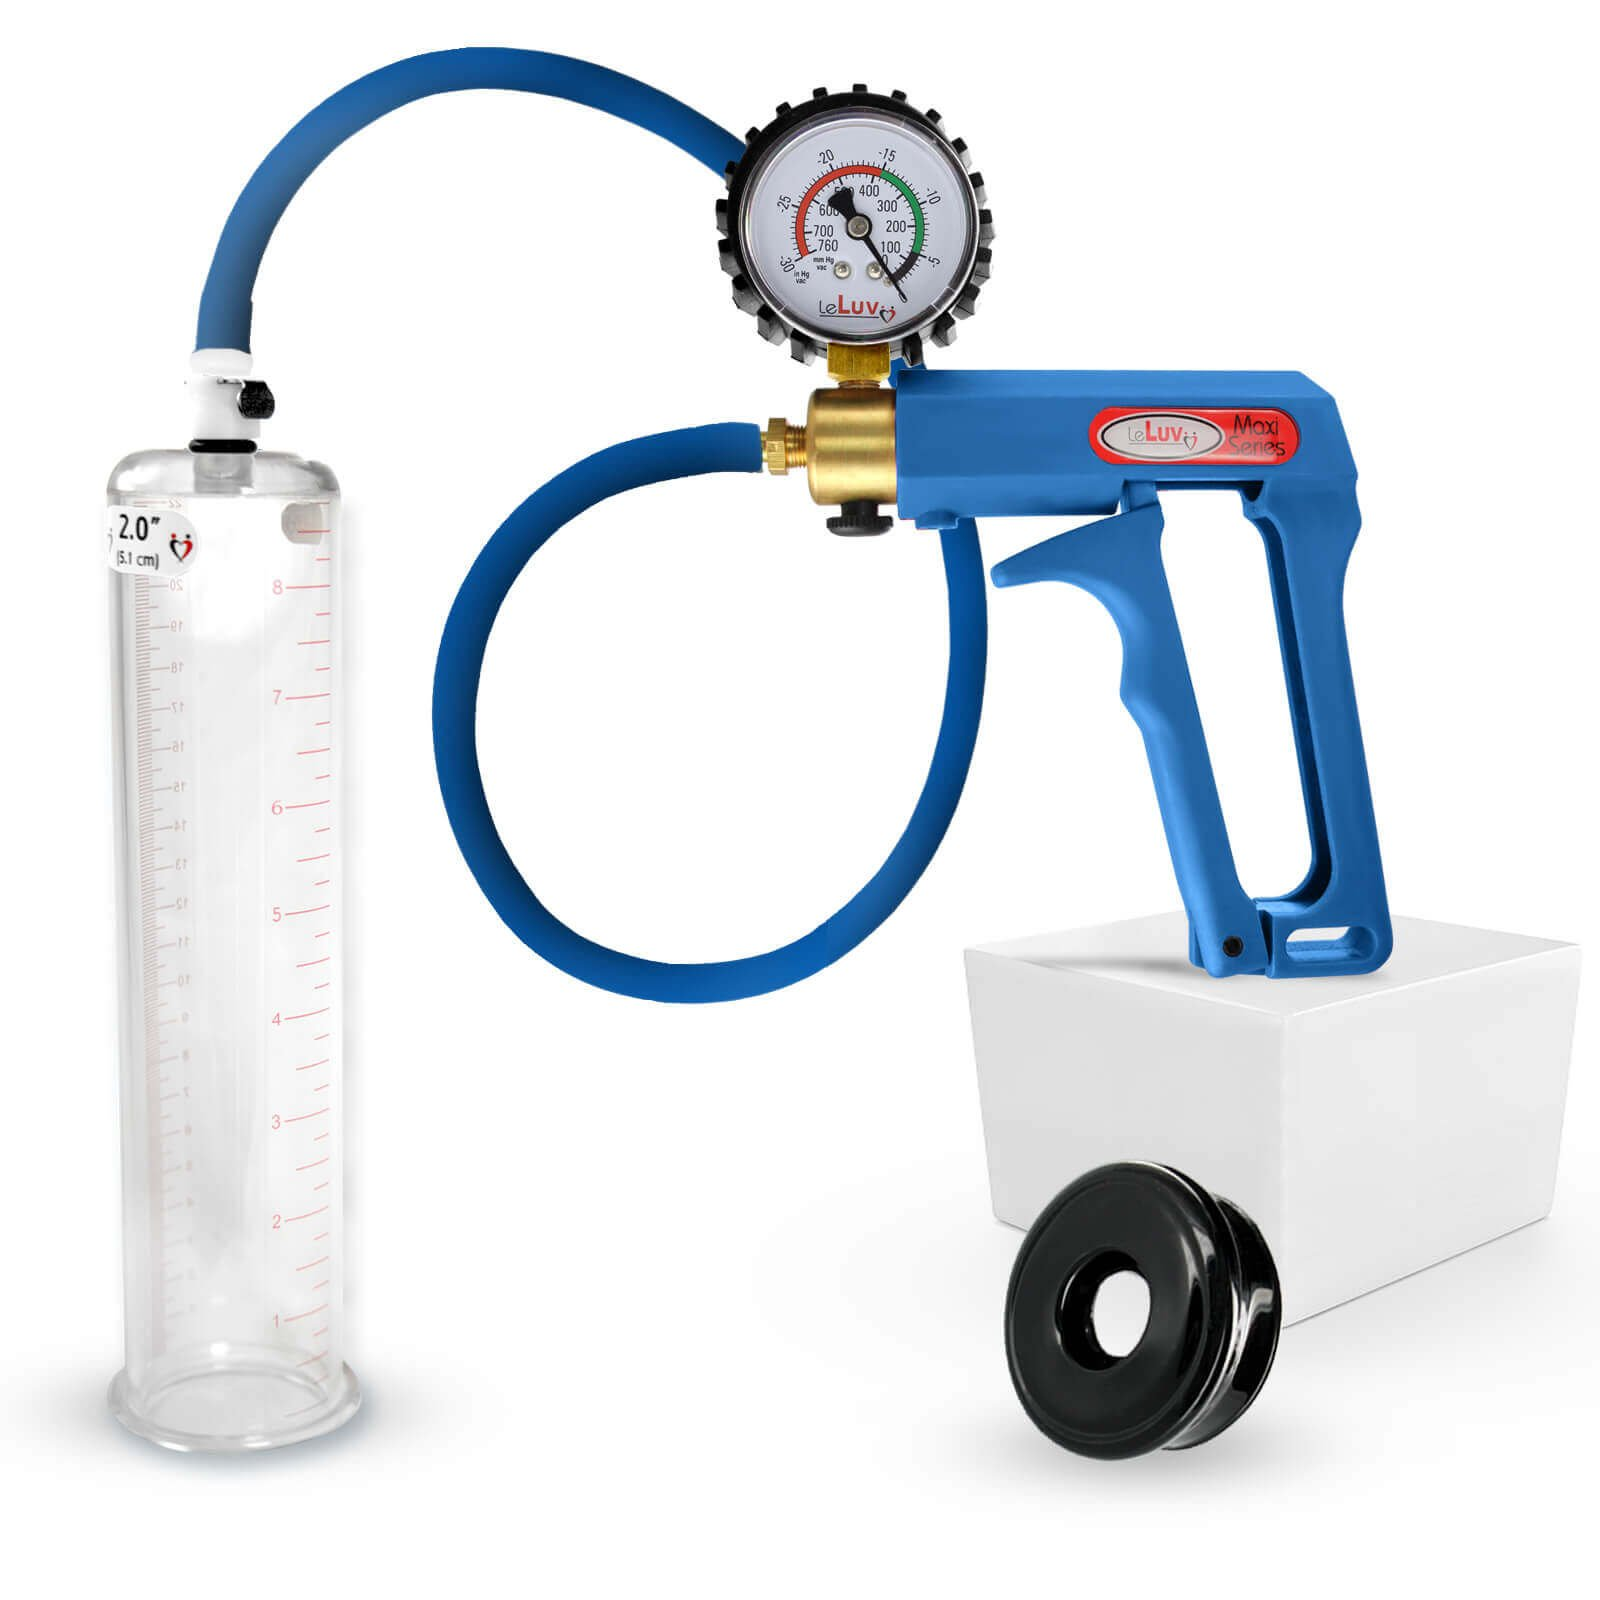 LeLuv Maxi Blue Plus Rubberized Vacuum Gauge Penis Pump Bundle with Premium Silicone Hose and Black TPR Seal 9 inch x 2 inch Cylinder